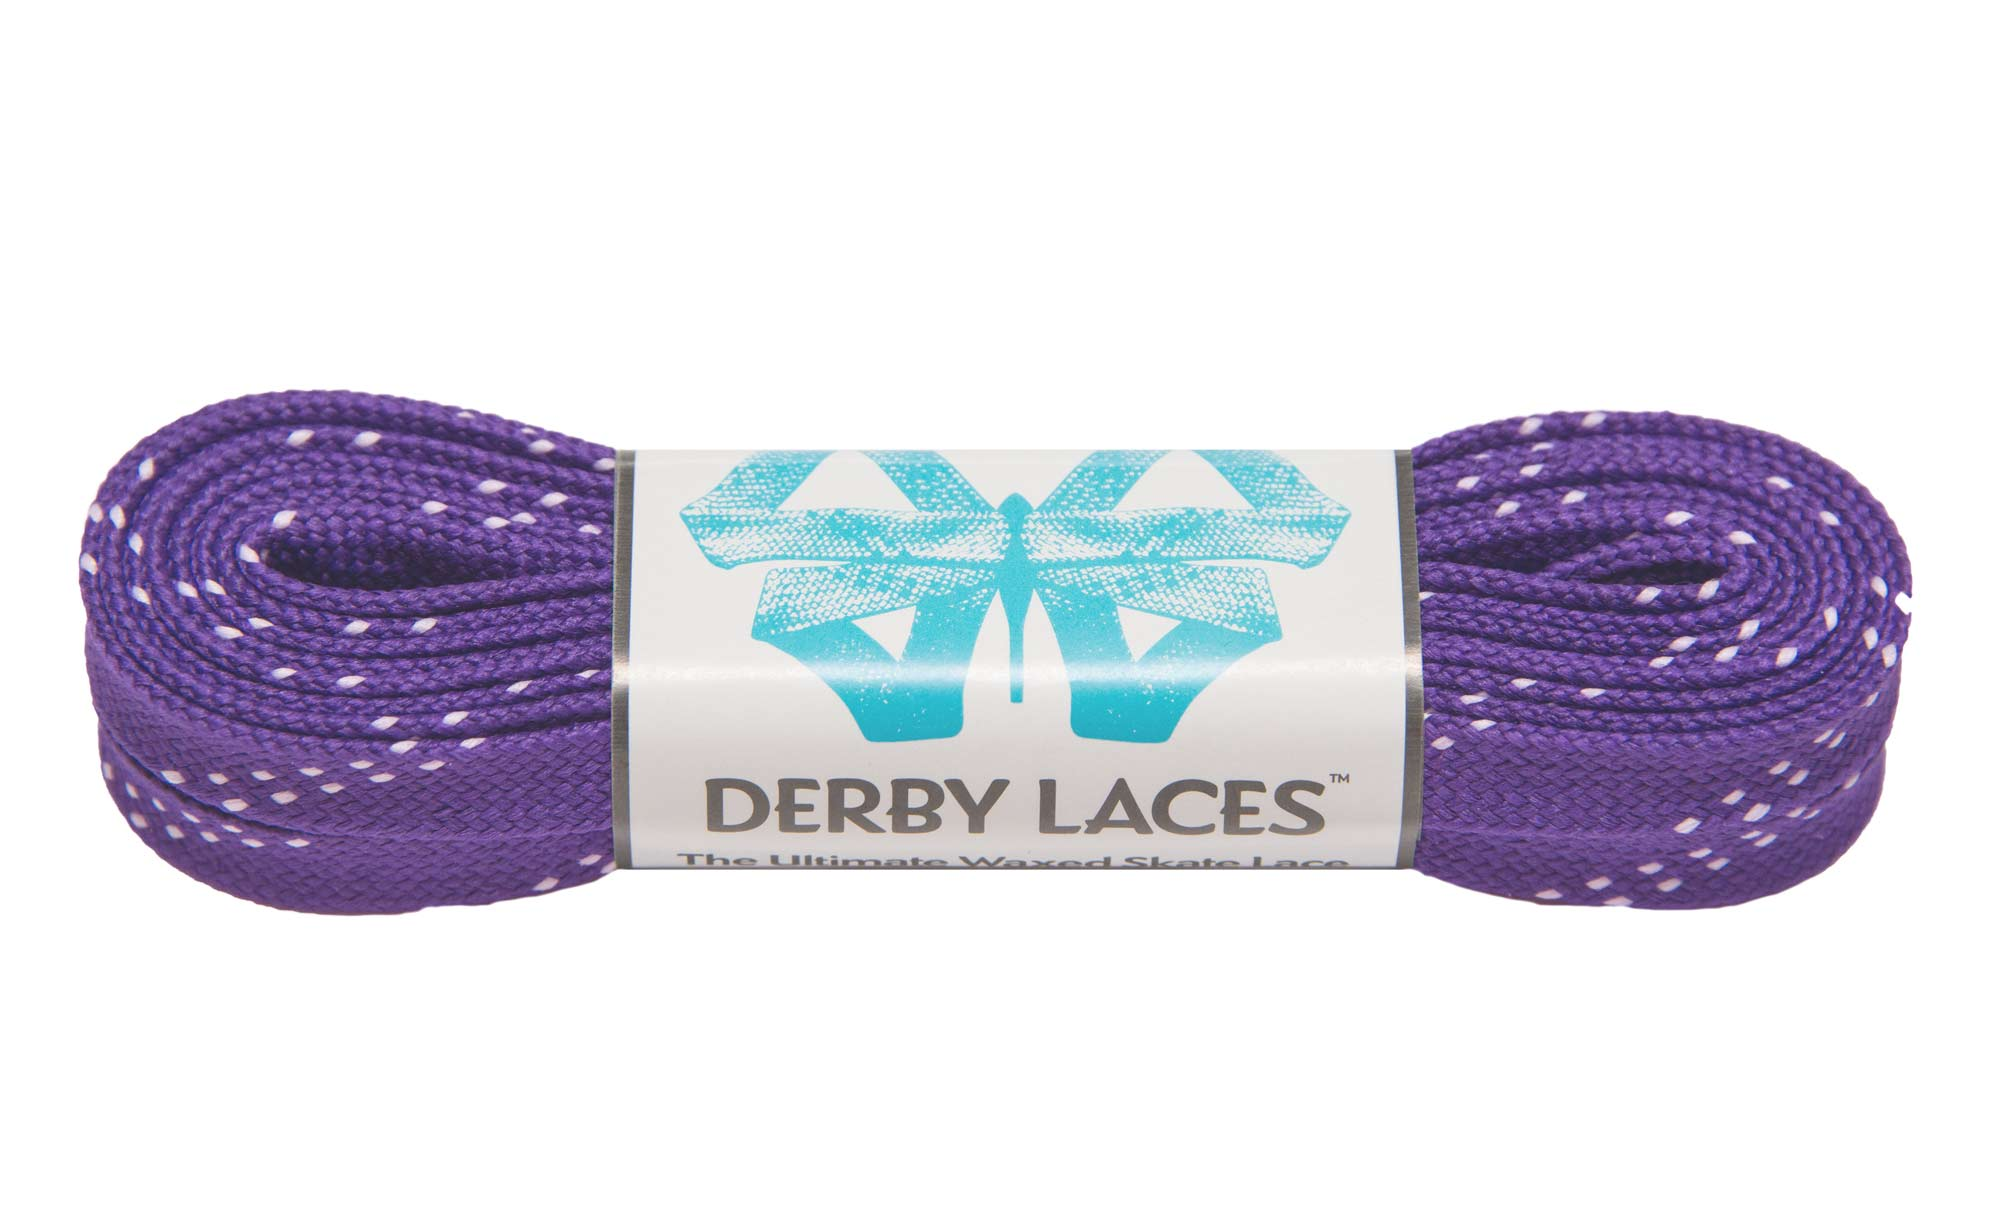 for Boots 10mm Wide Derby Laces Solid White Flat Skates and Hockey Skates Roller Derby